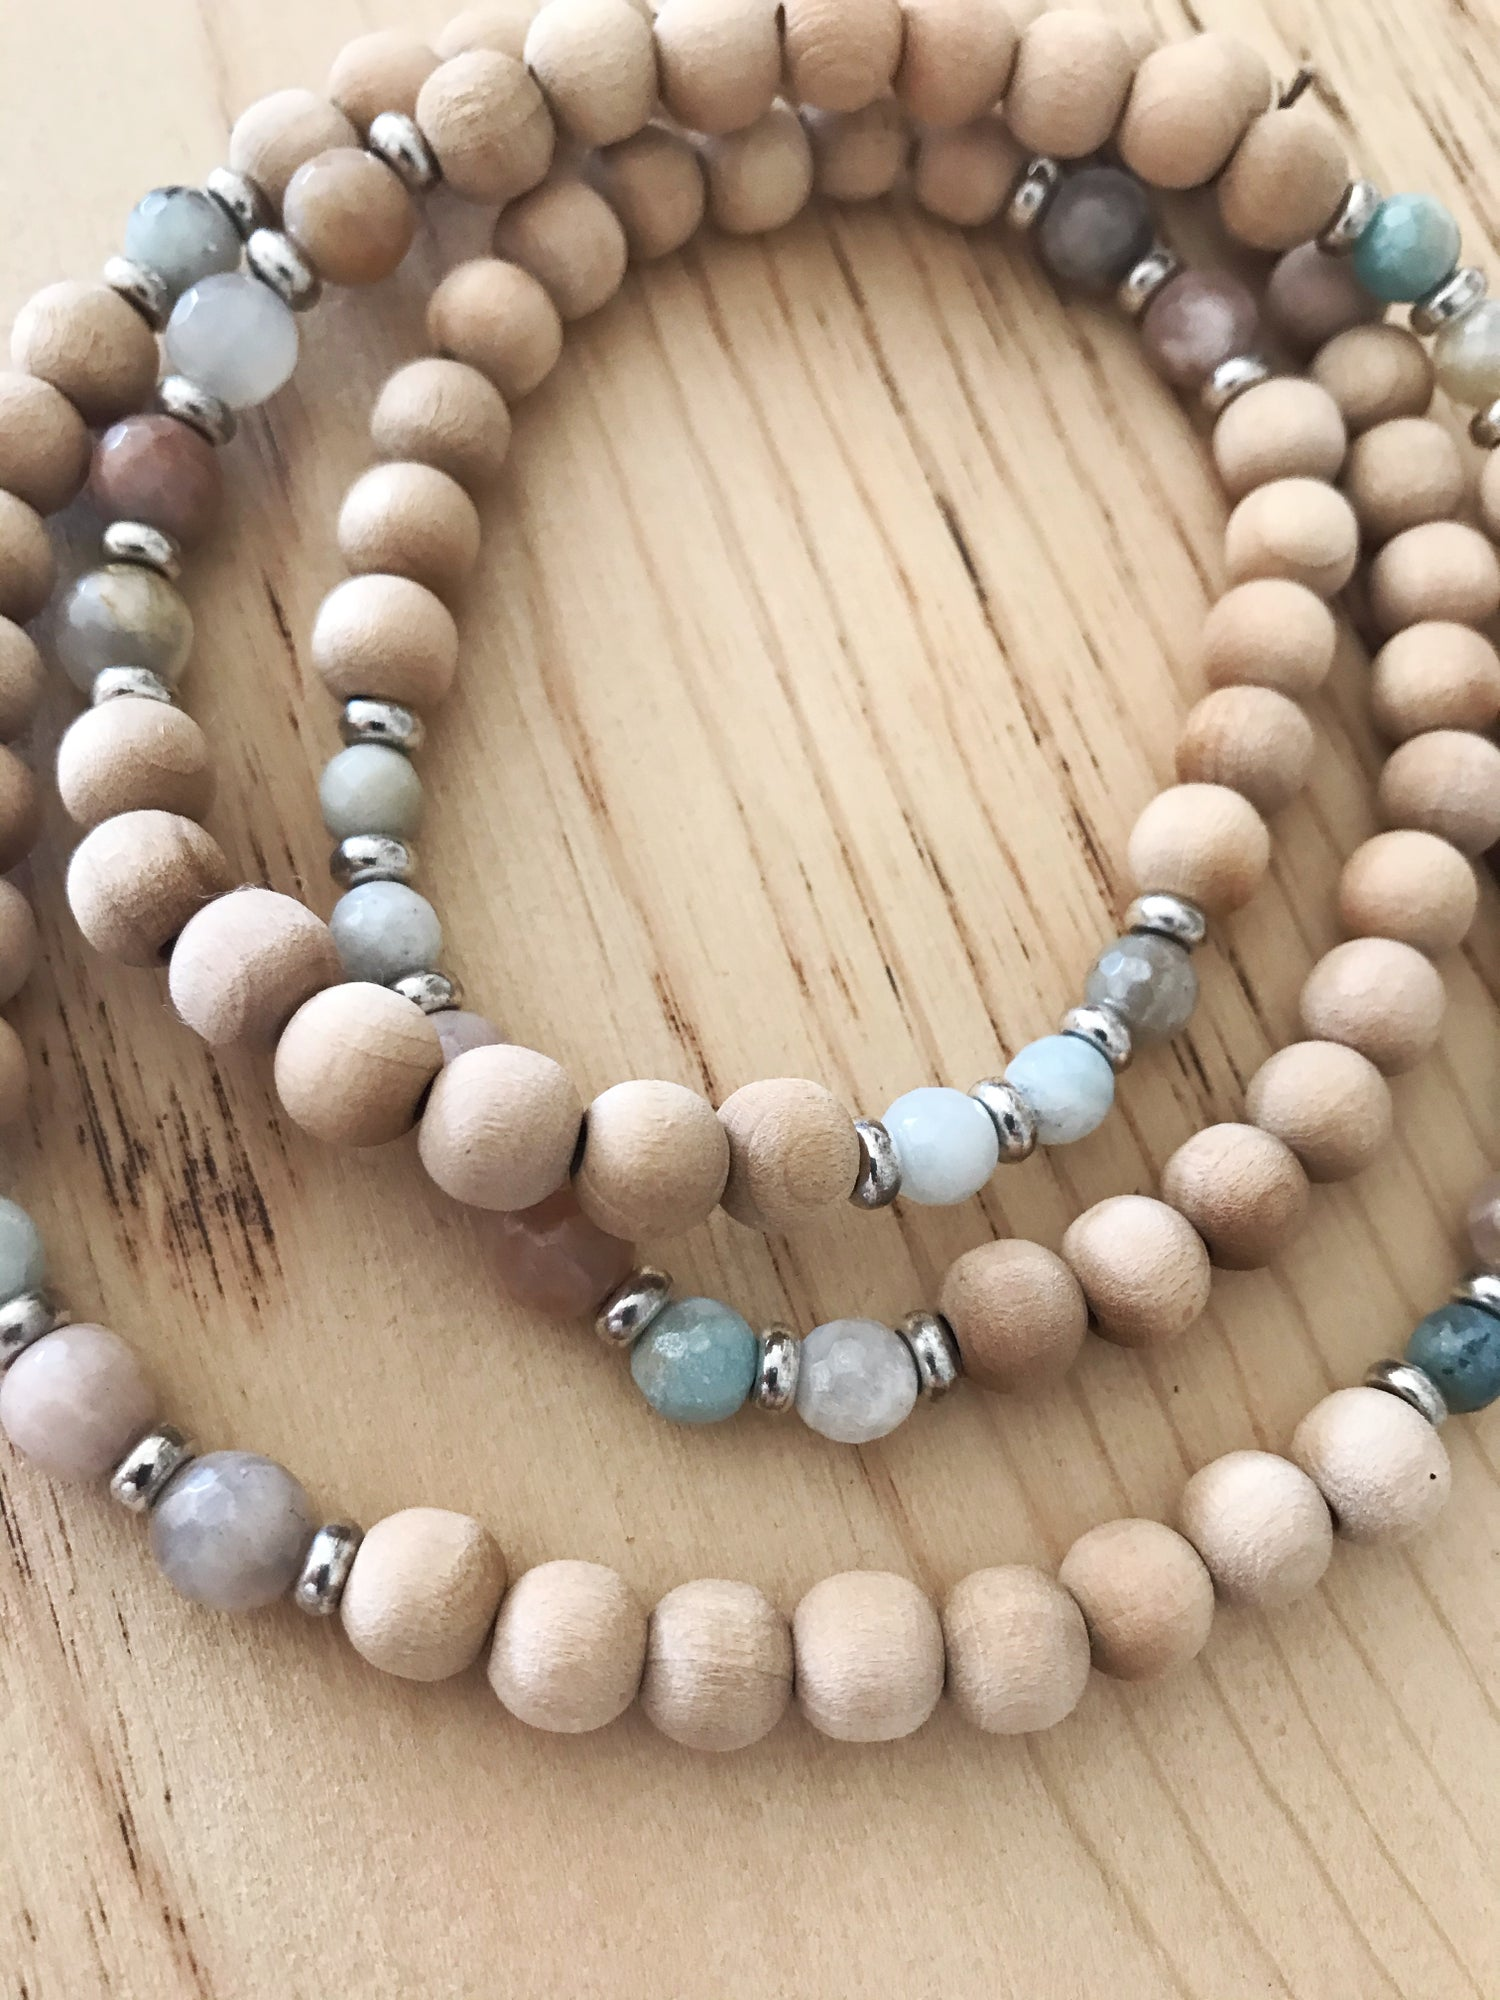 Image of Love Bead Necklace #106 - Dried Palm Wood Beads with Gemstones